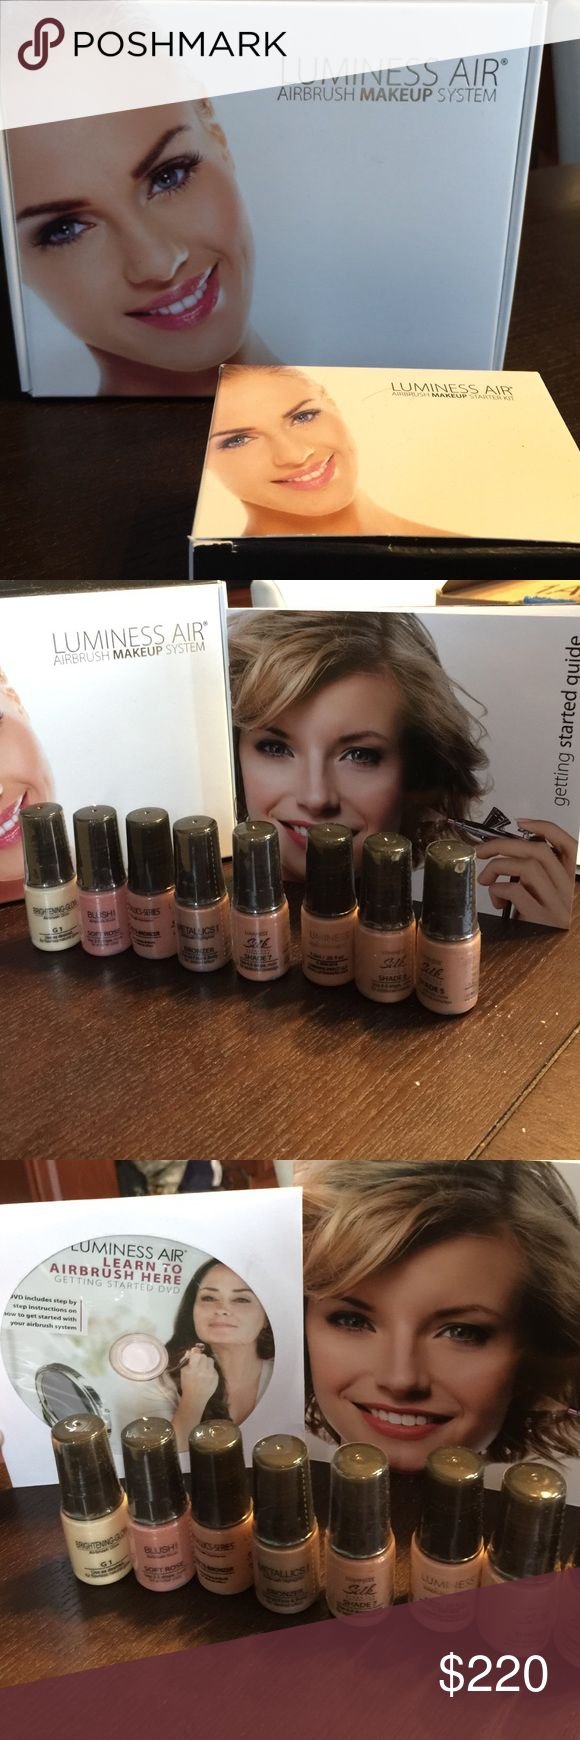 Luminess Air - Airbrush Makeup System and makeup The Airbrush System, Getting Started Guide & DVD, Starter Kit Ultra - Warm Luminess Shade 4, 5, 6 and 7. Luminess Xout cover up, Minus-10 instant skin smoother, primer moisturizer concealer foundation shade 7, M1-primer, G1-brightening glow, soft rose blush, matte bronzer, metallic bronzer Luminess Makeup Brushes & Tools